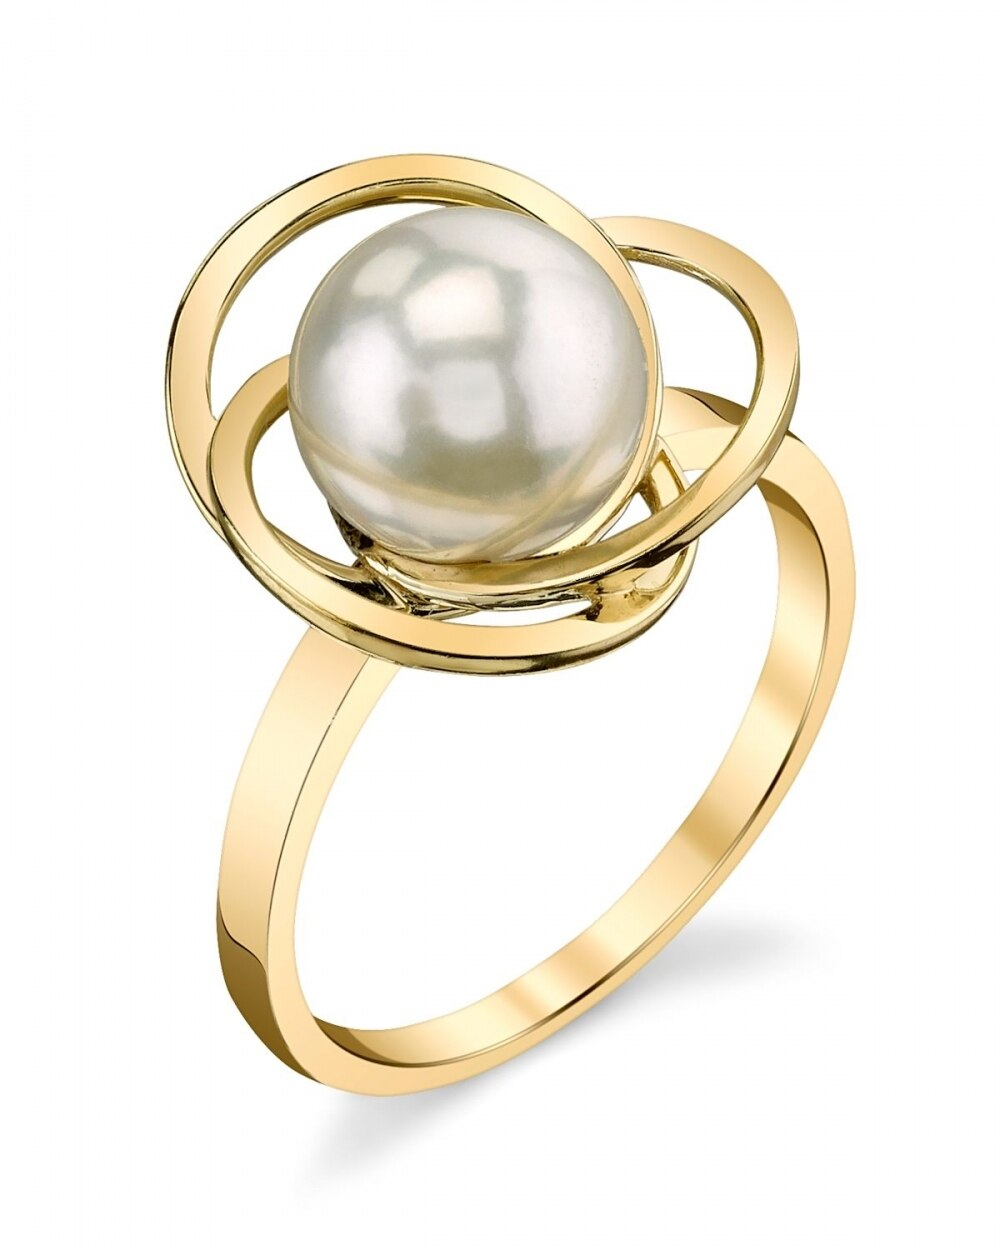 This exquisite ring features an 9.0-1.0mm White South Sea pearl, handpicked for its luminous luster